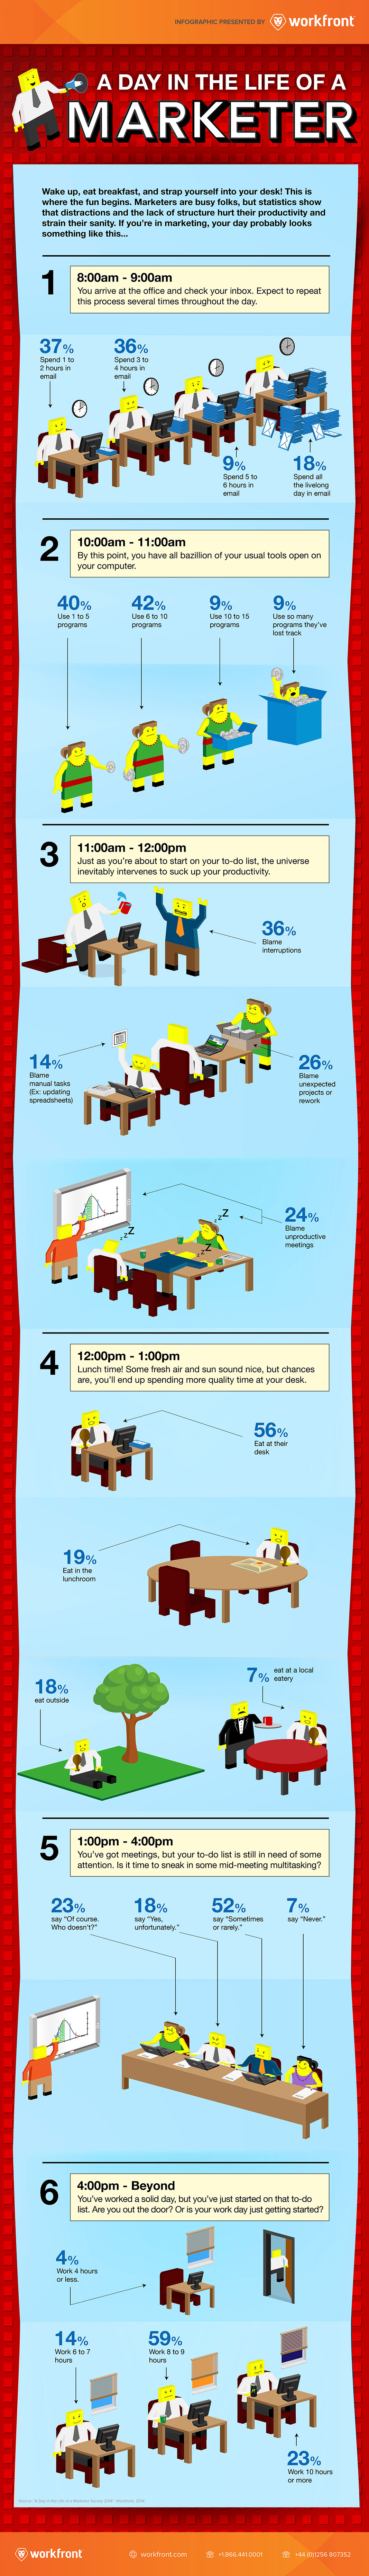 infographic day in the life of marketer